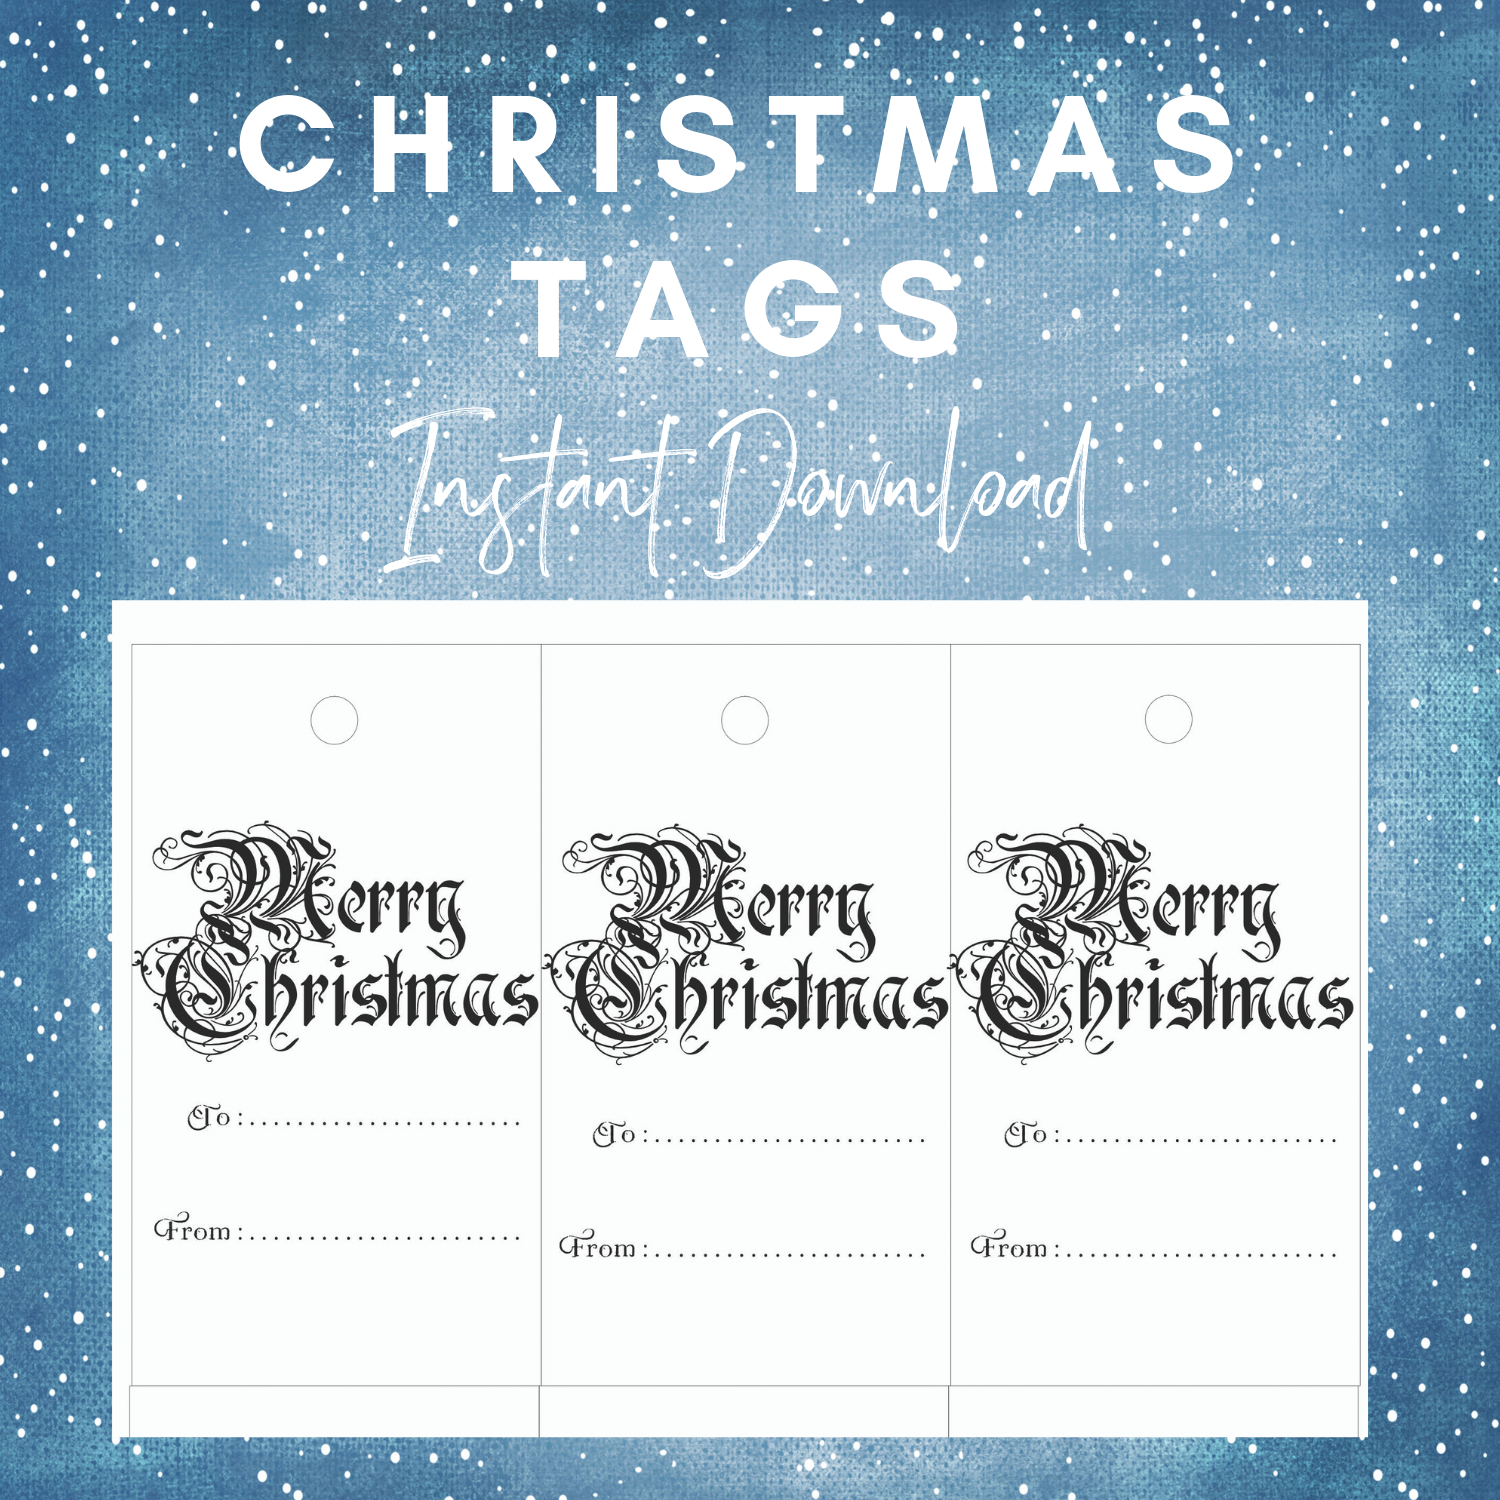 Copy of Copy of Copy of Copy of Christmas Tags 19